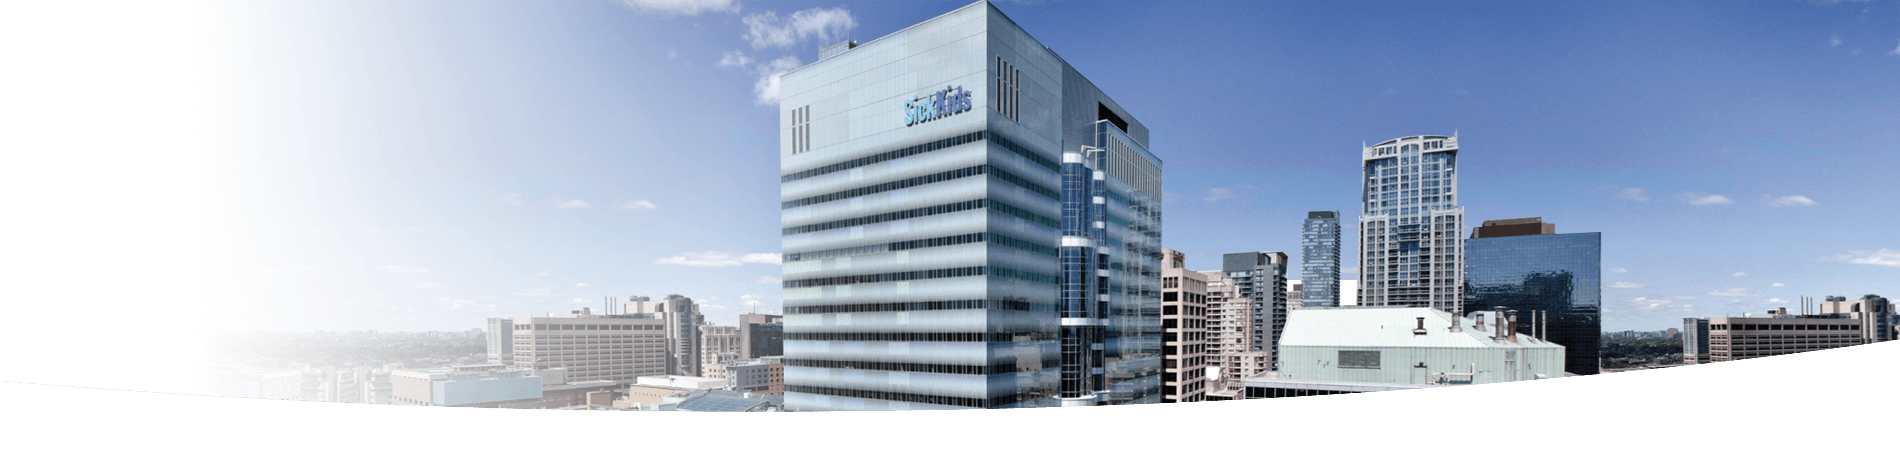 SickKids hospital building